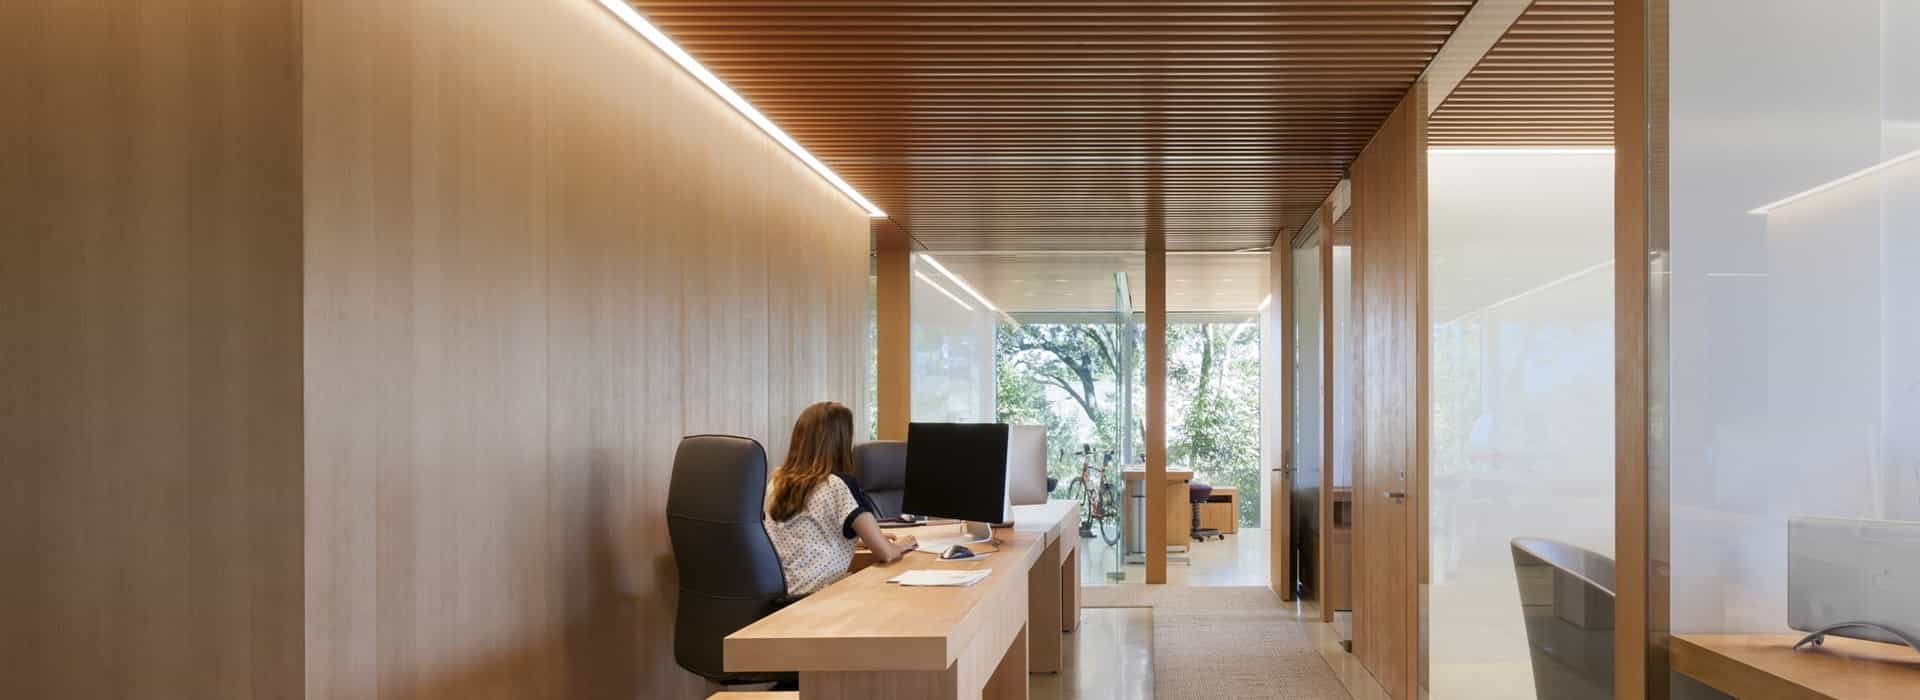 Venture_Capital_Office_3_credit_Eric_Staudenmaier_Photography